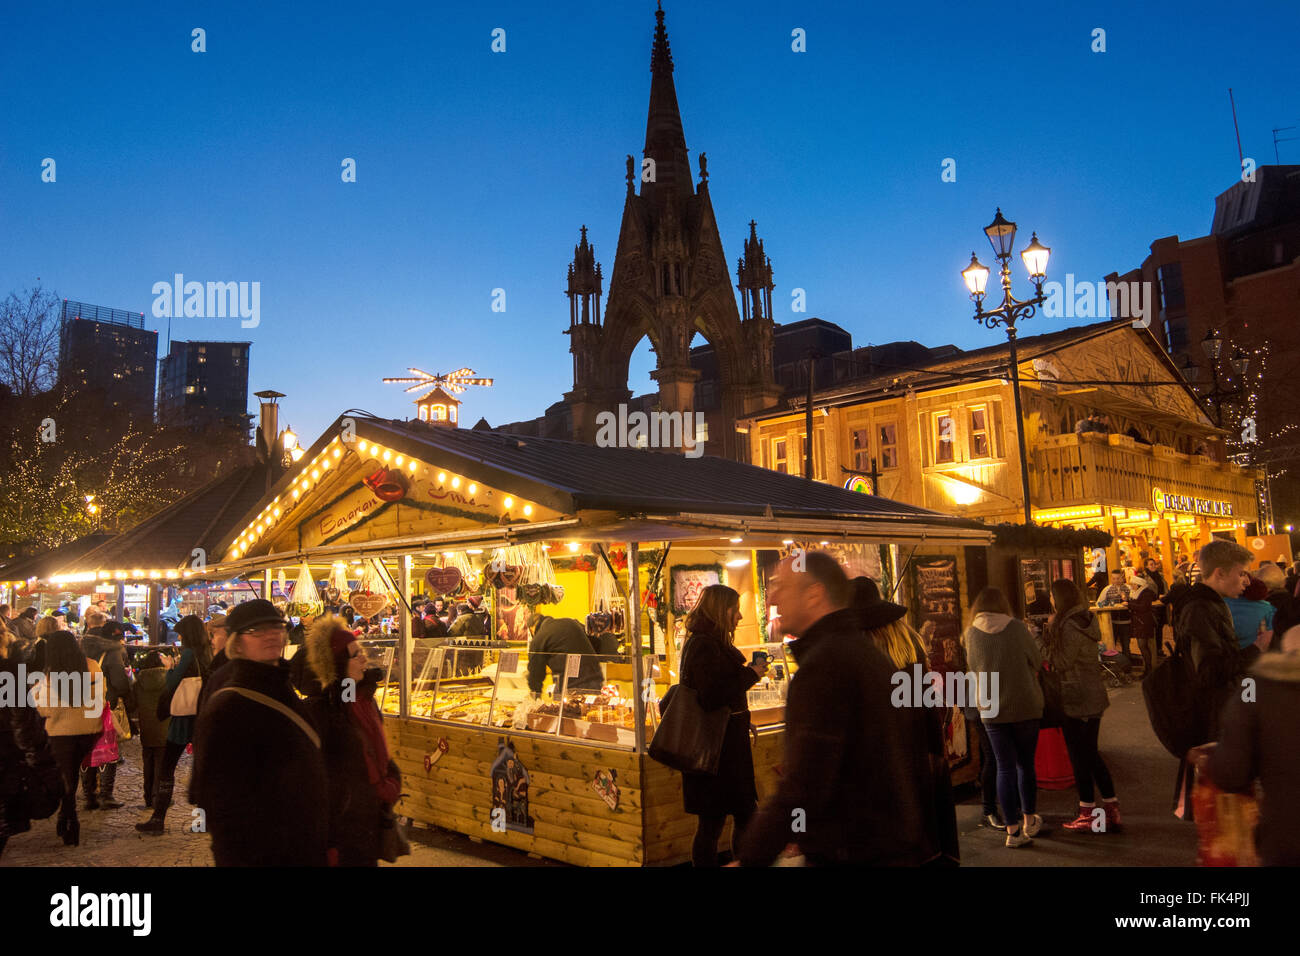 Manchester Christmas Market in front of the Town Hall in Albert Square. Stock Photo